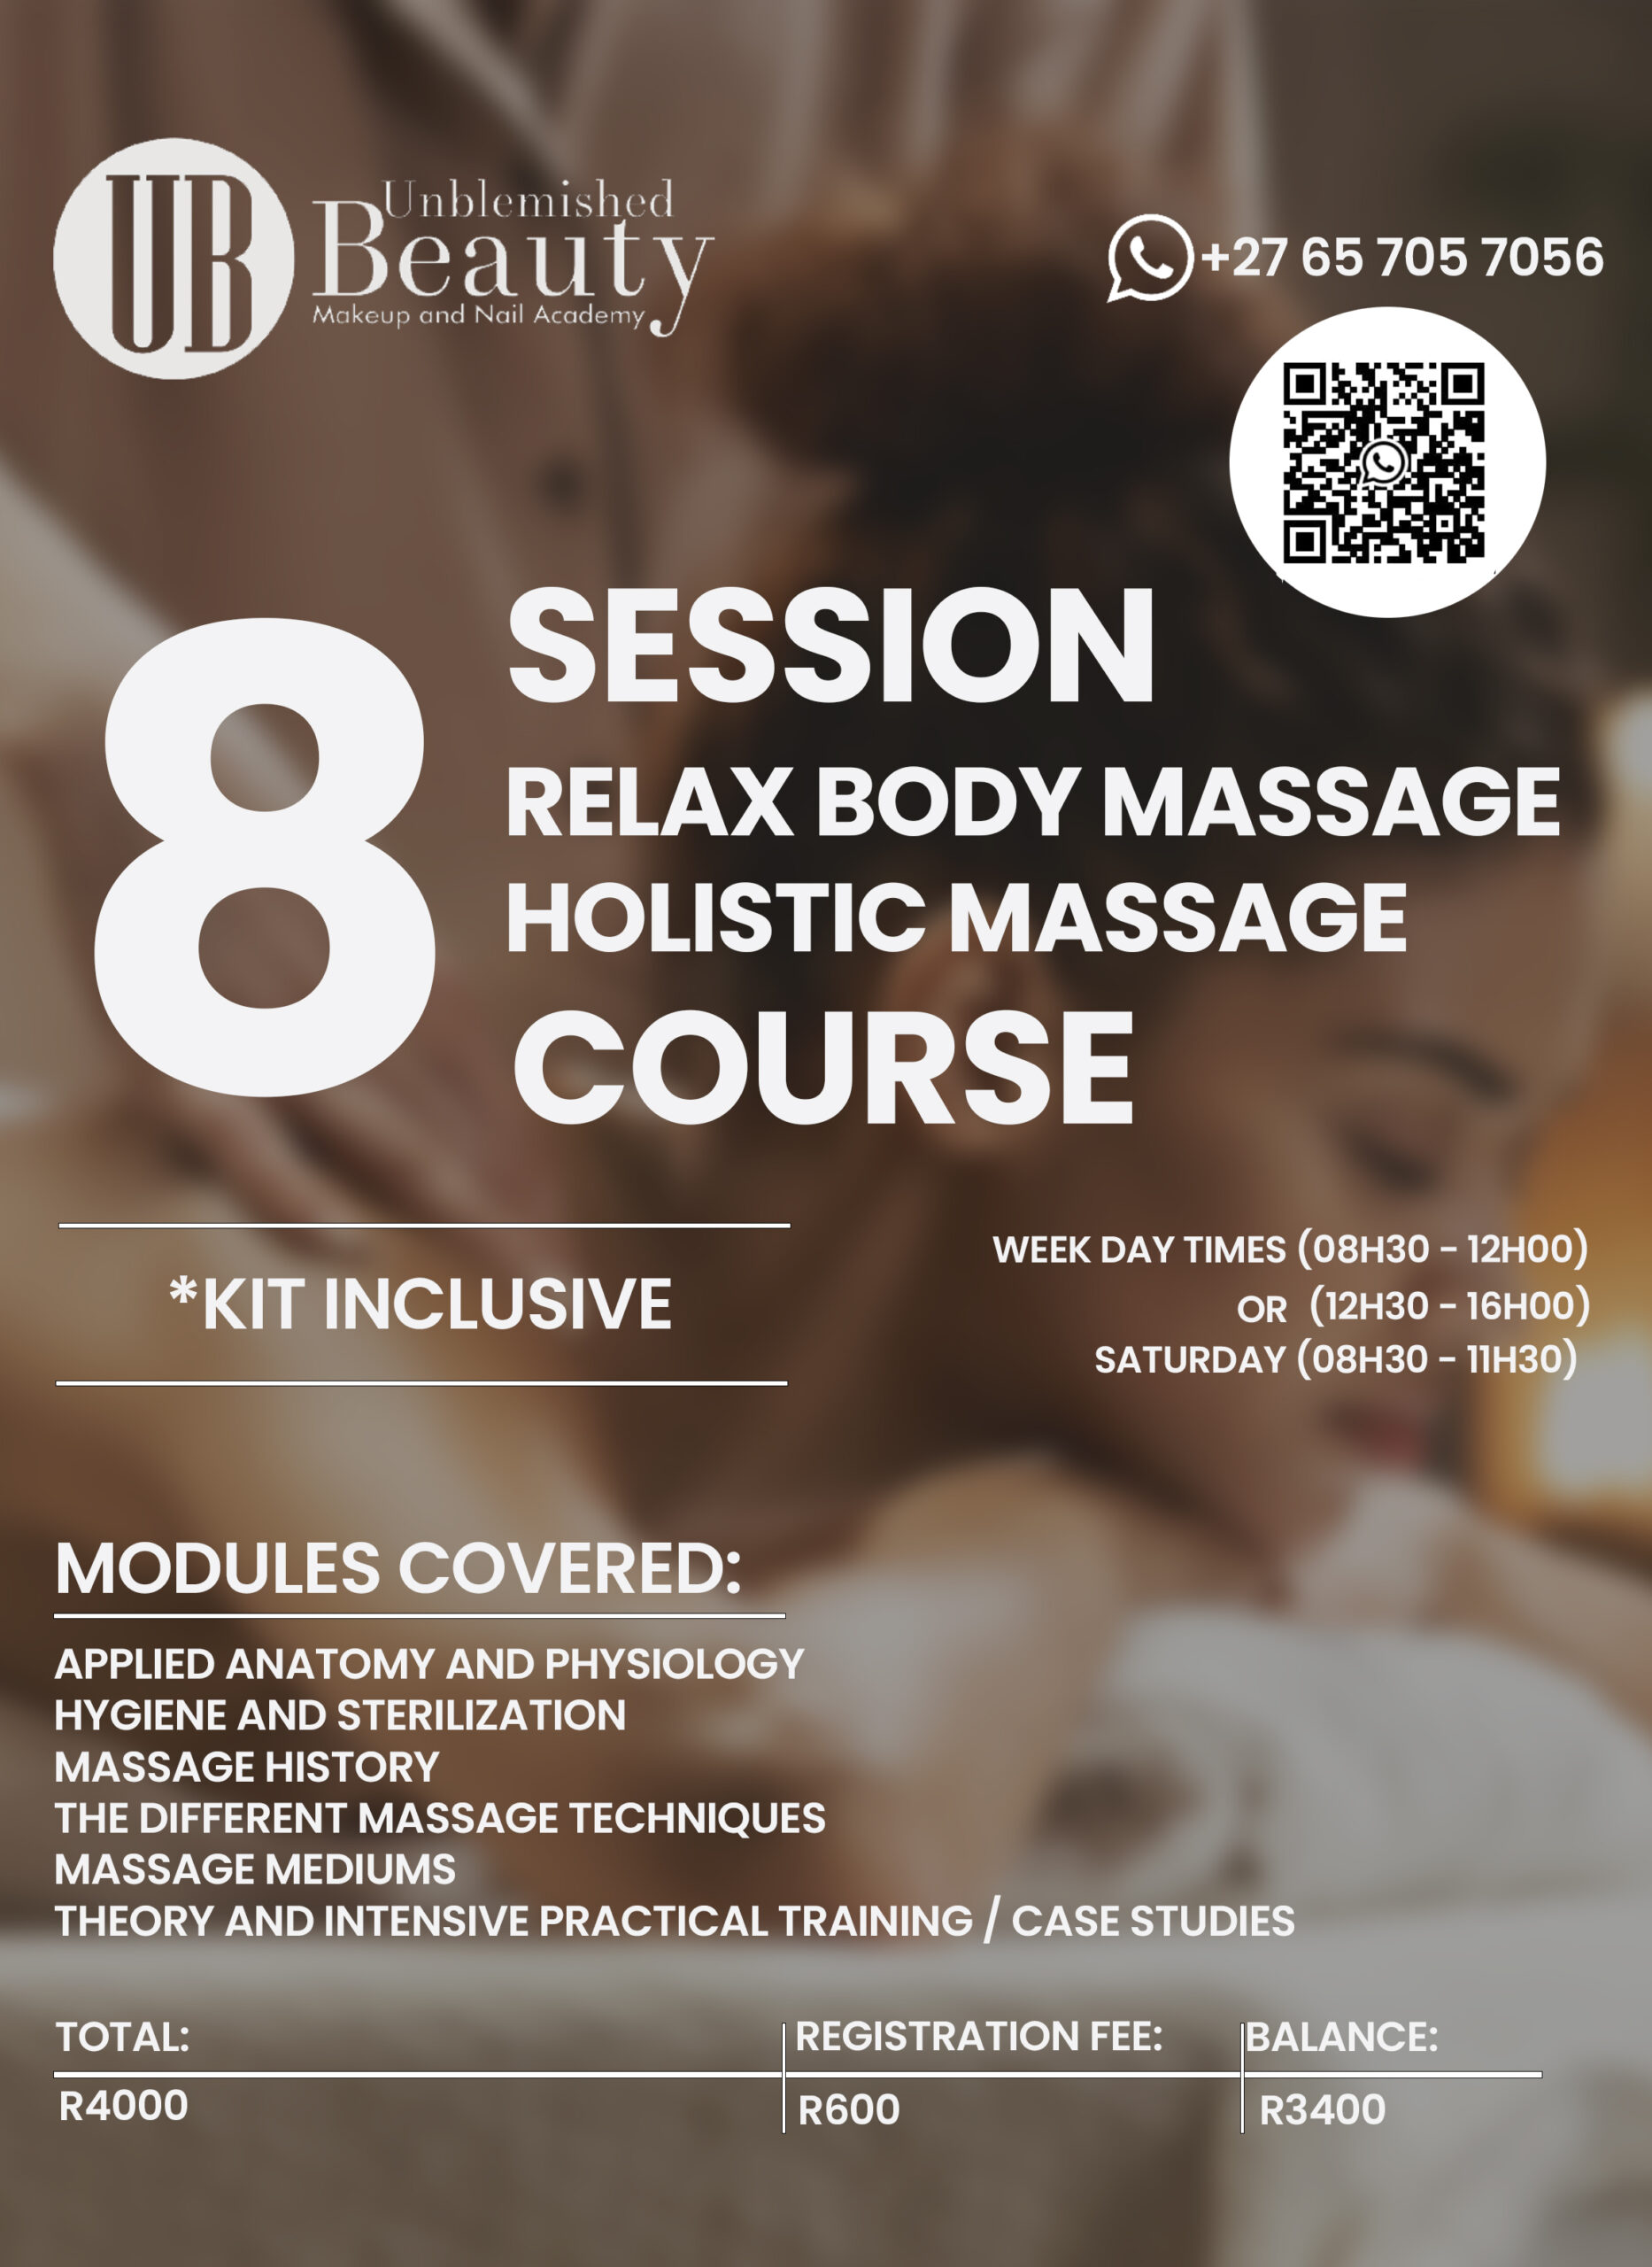 Unblemished Beauty Course Posters- Relax Body Massage Holistic Massage 2